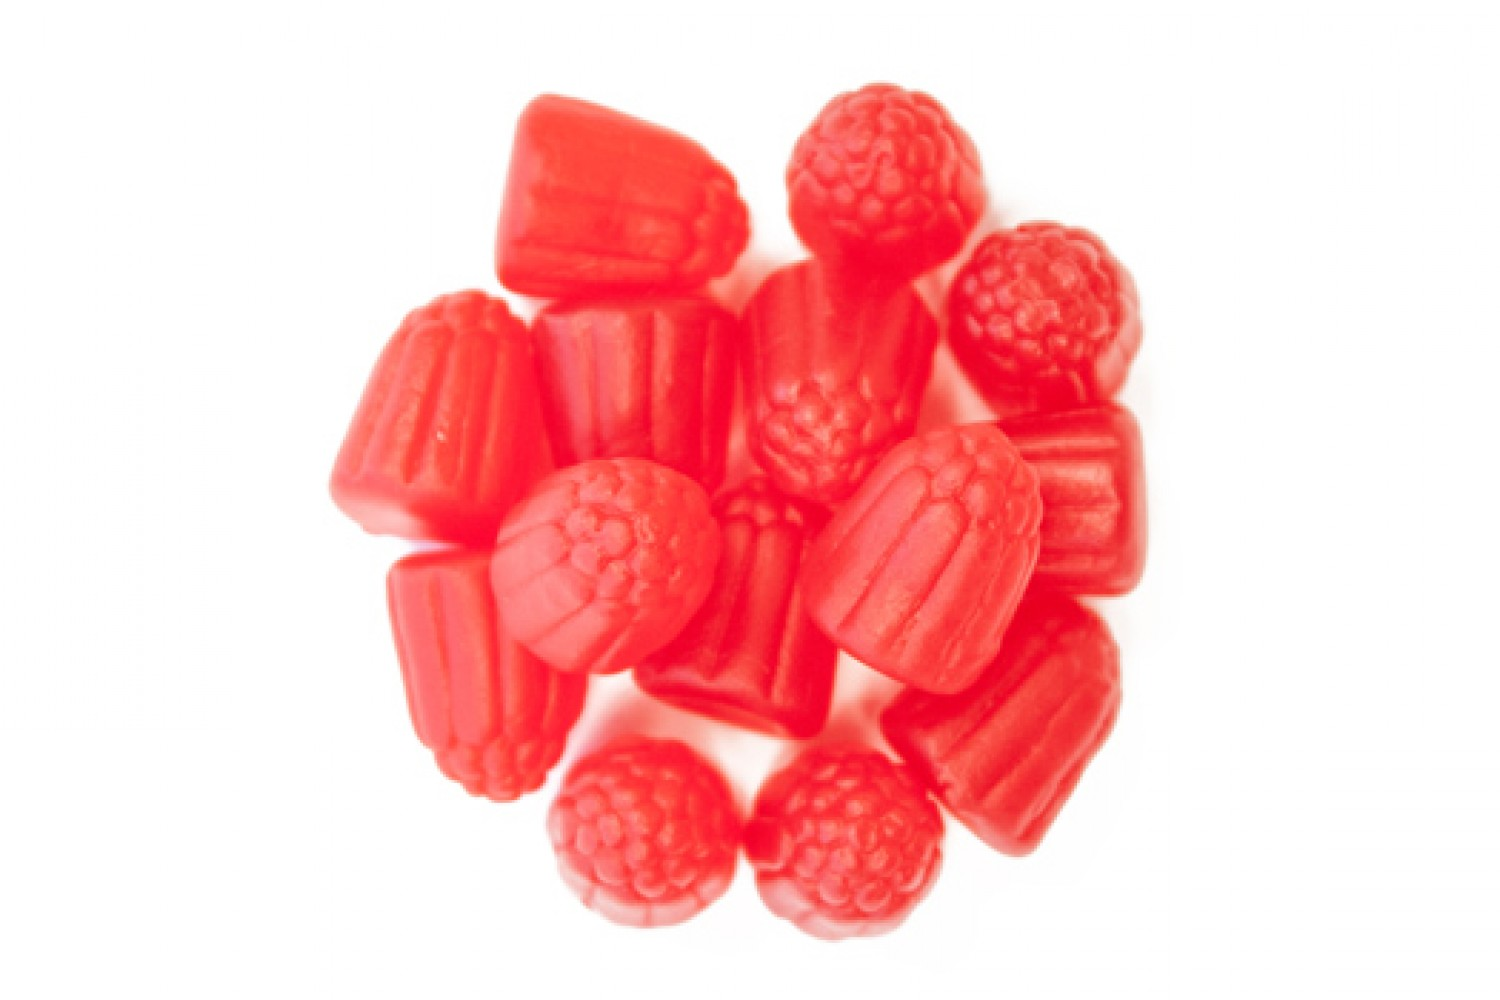 baies-rouges-allan-250g